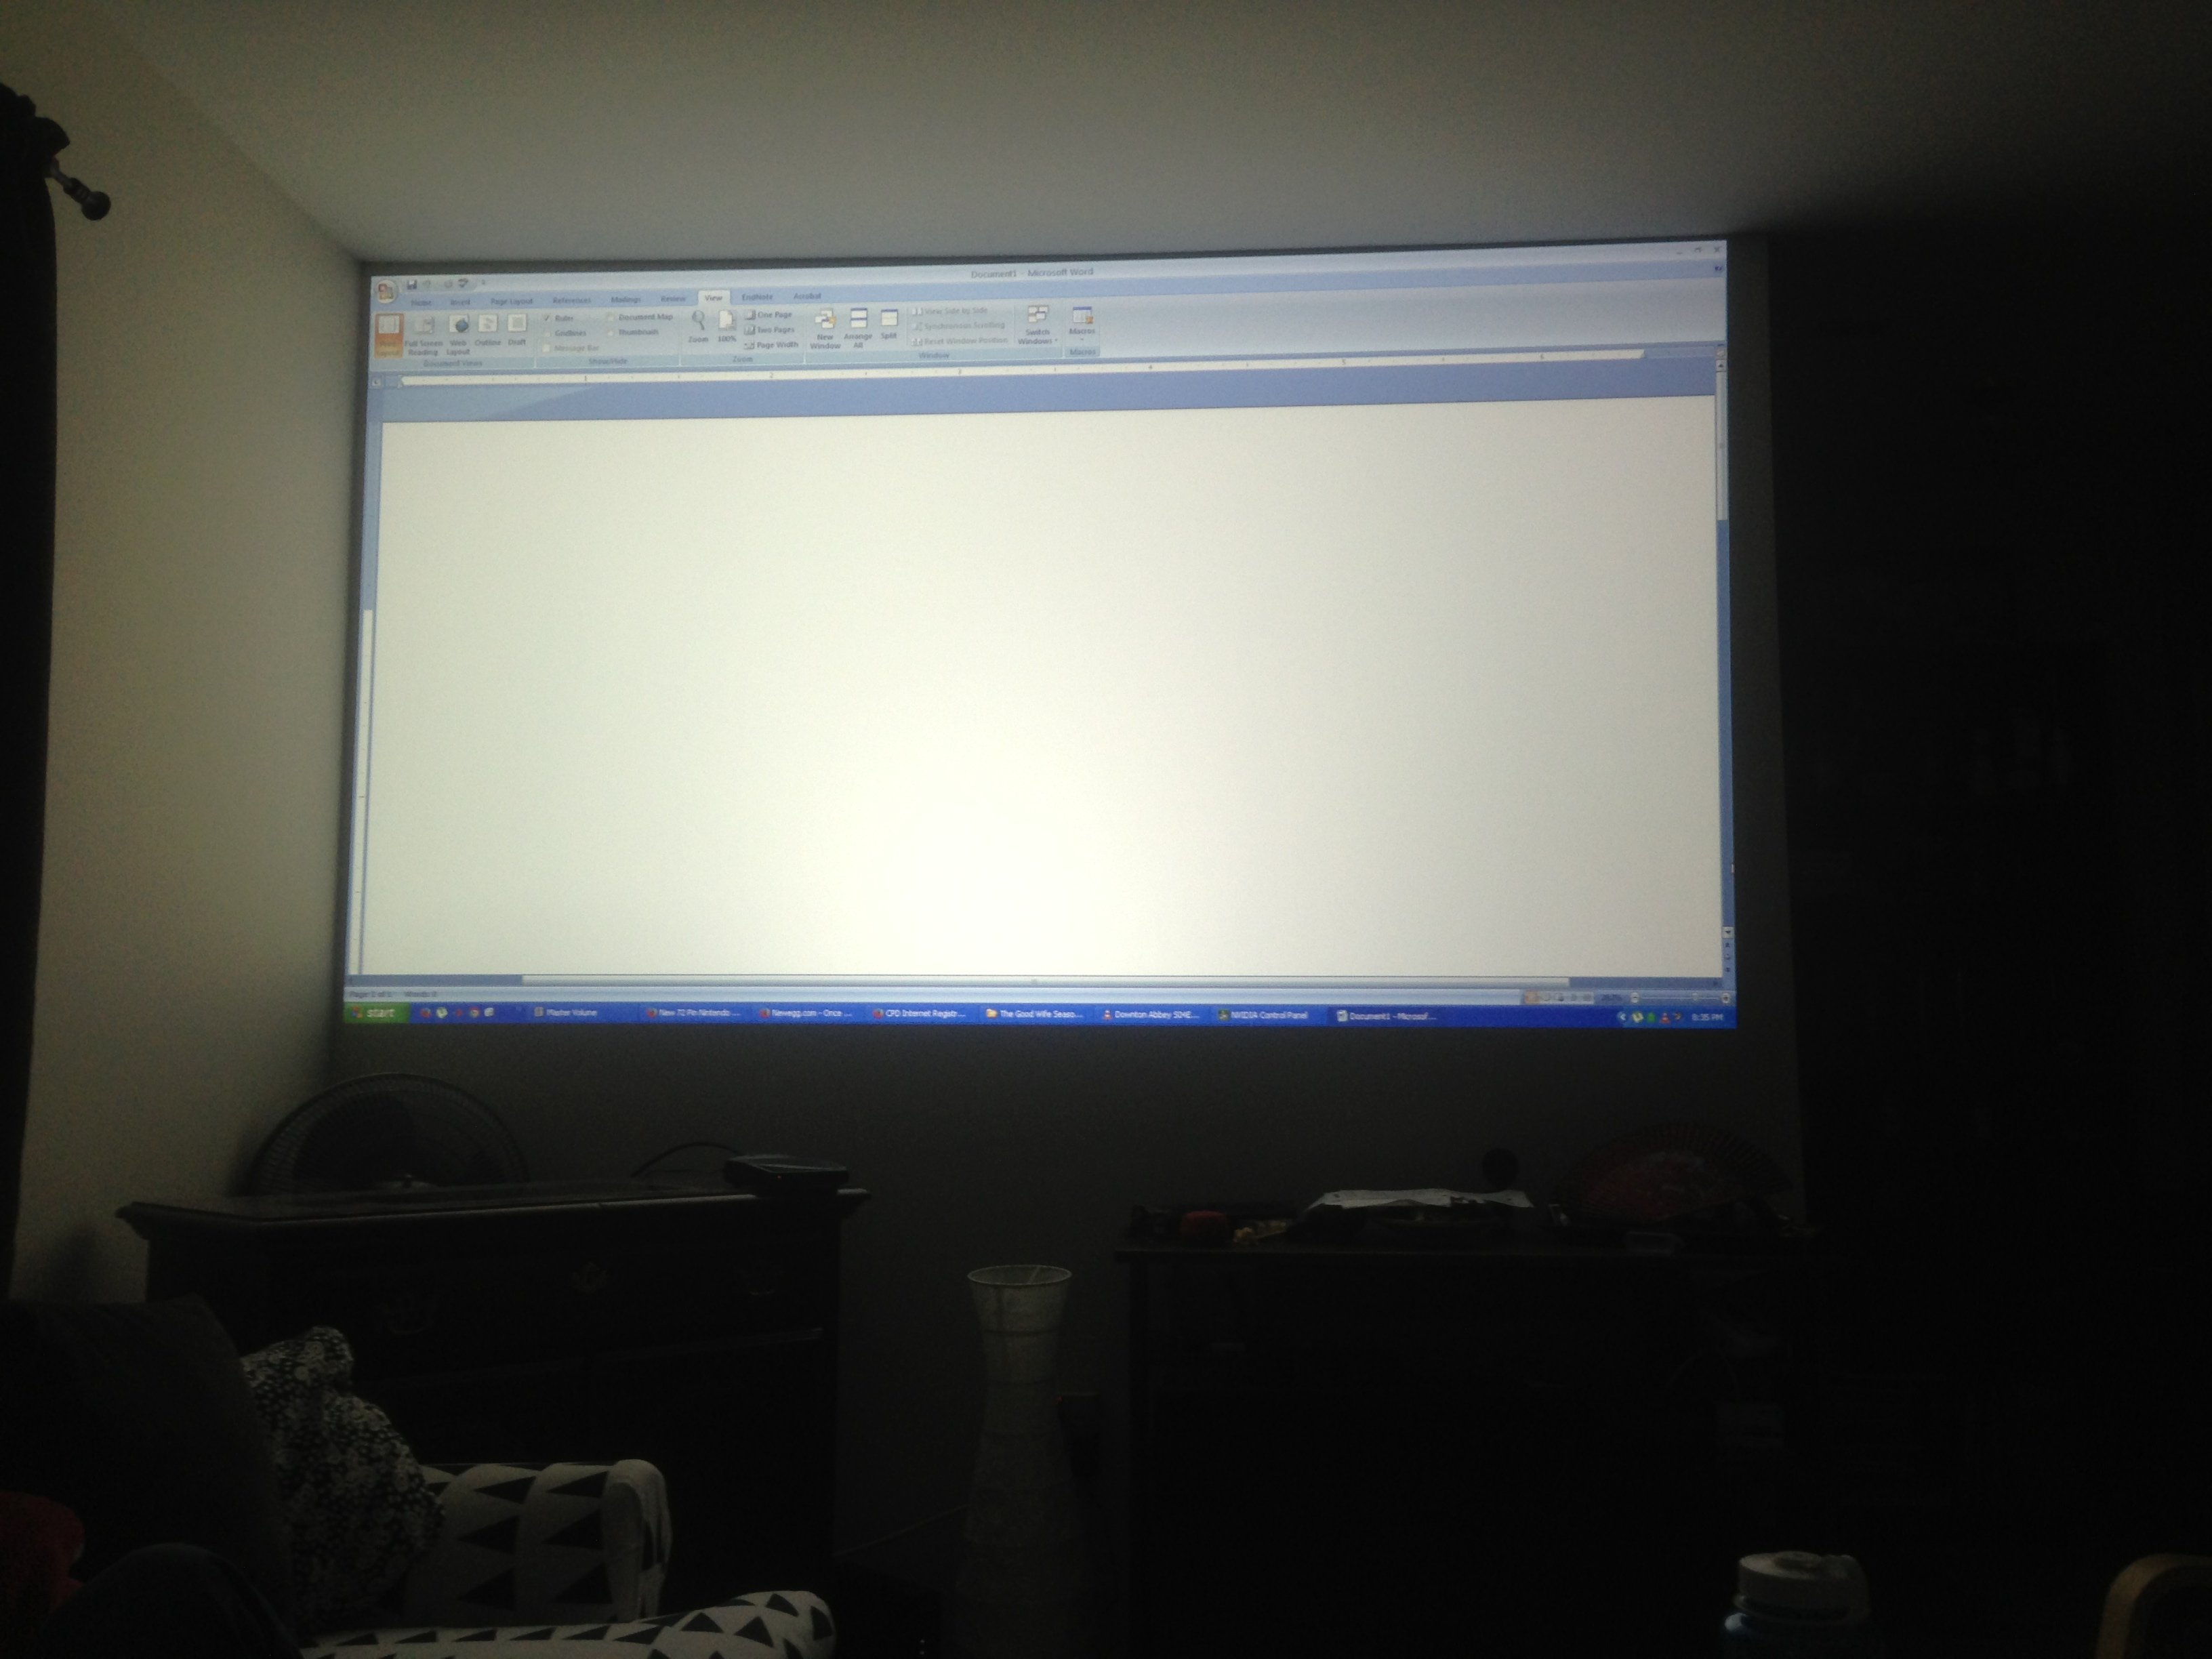 Uneven brightness distribution in Acer H6510BD, please advise - AVS